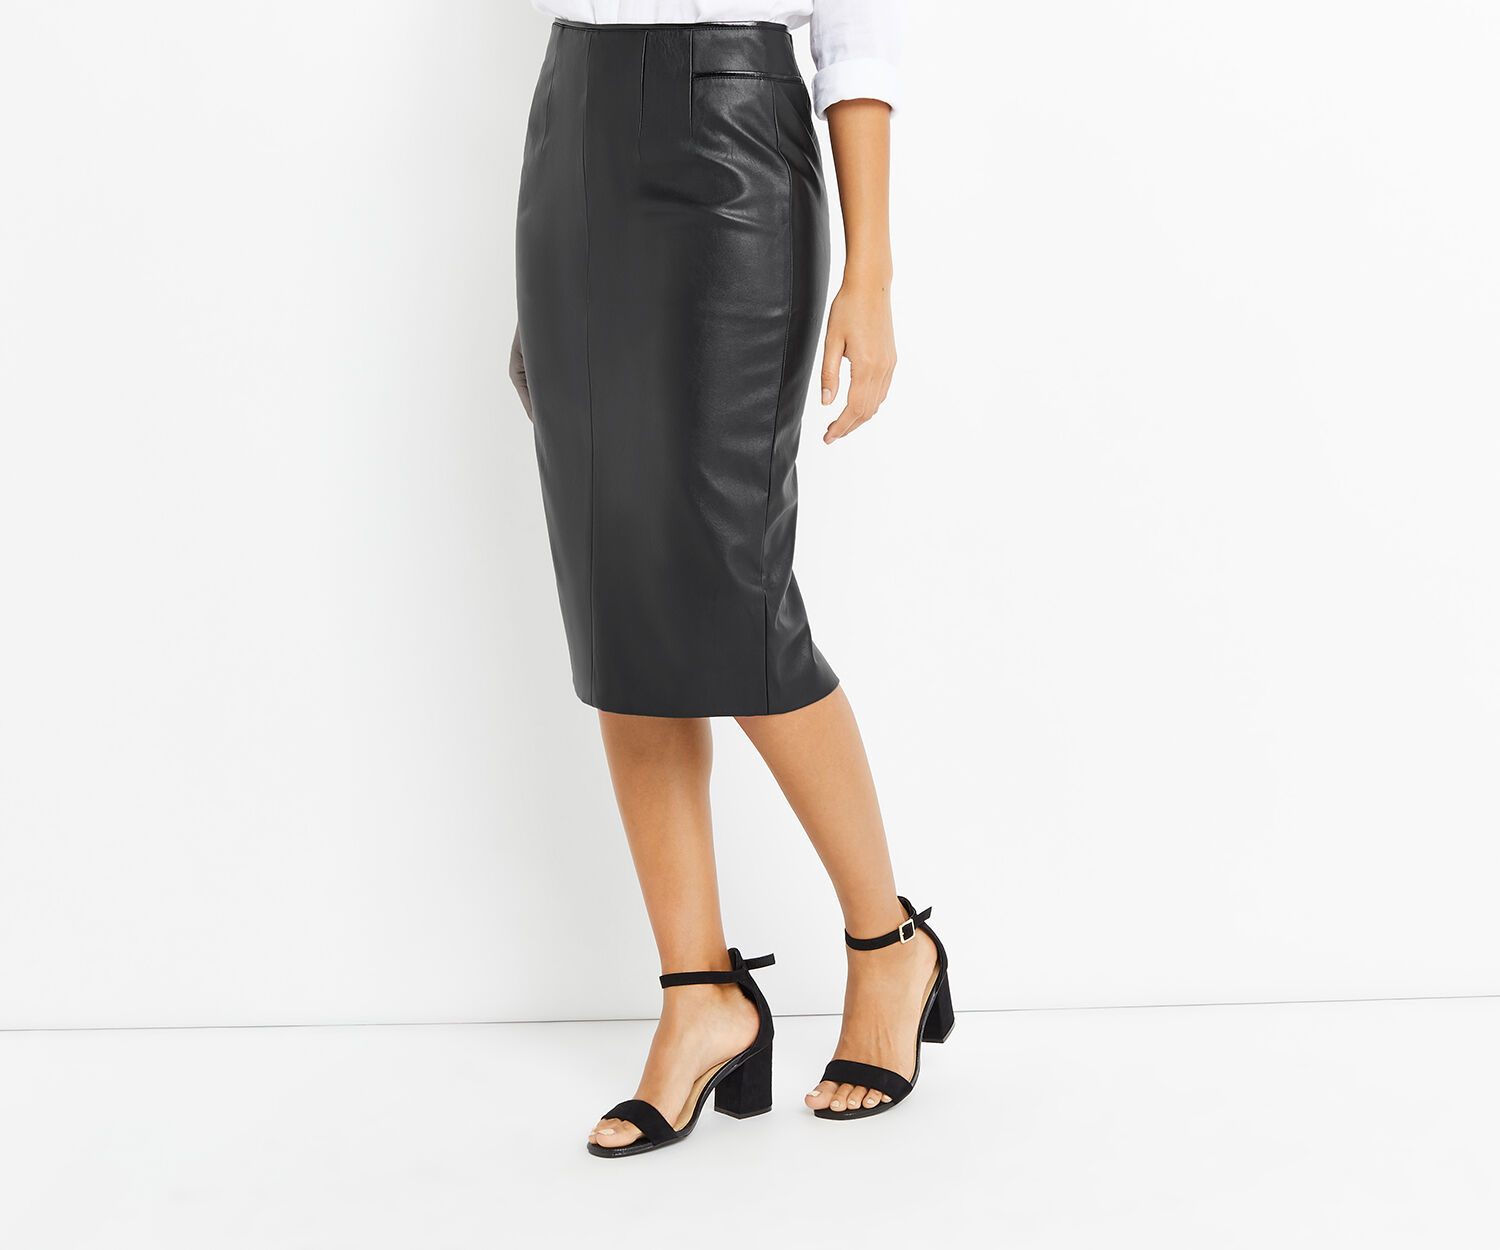 Oasis, FAUX LEATHER PENCIL SKIRT Black 1